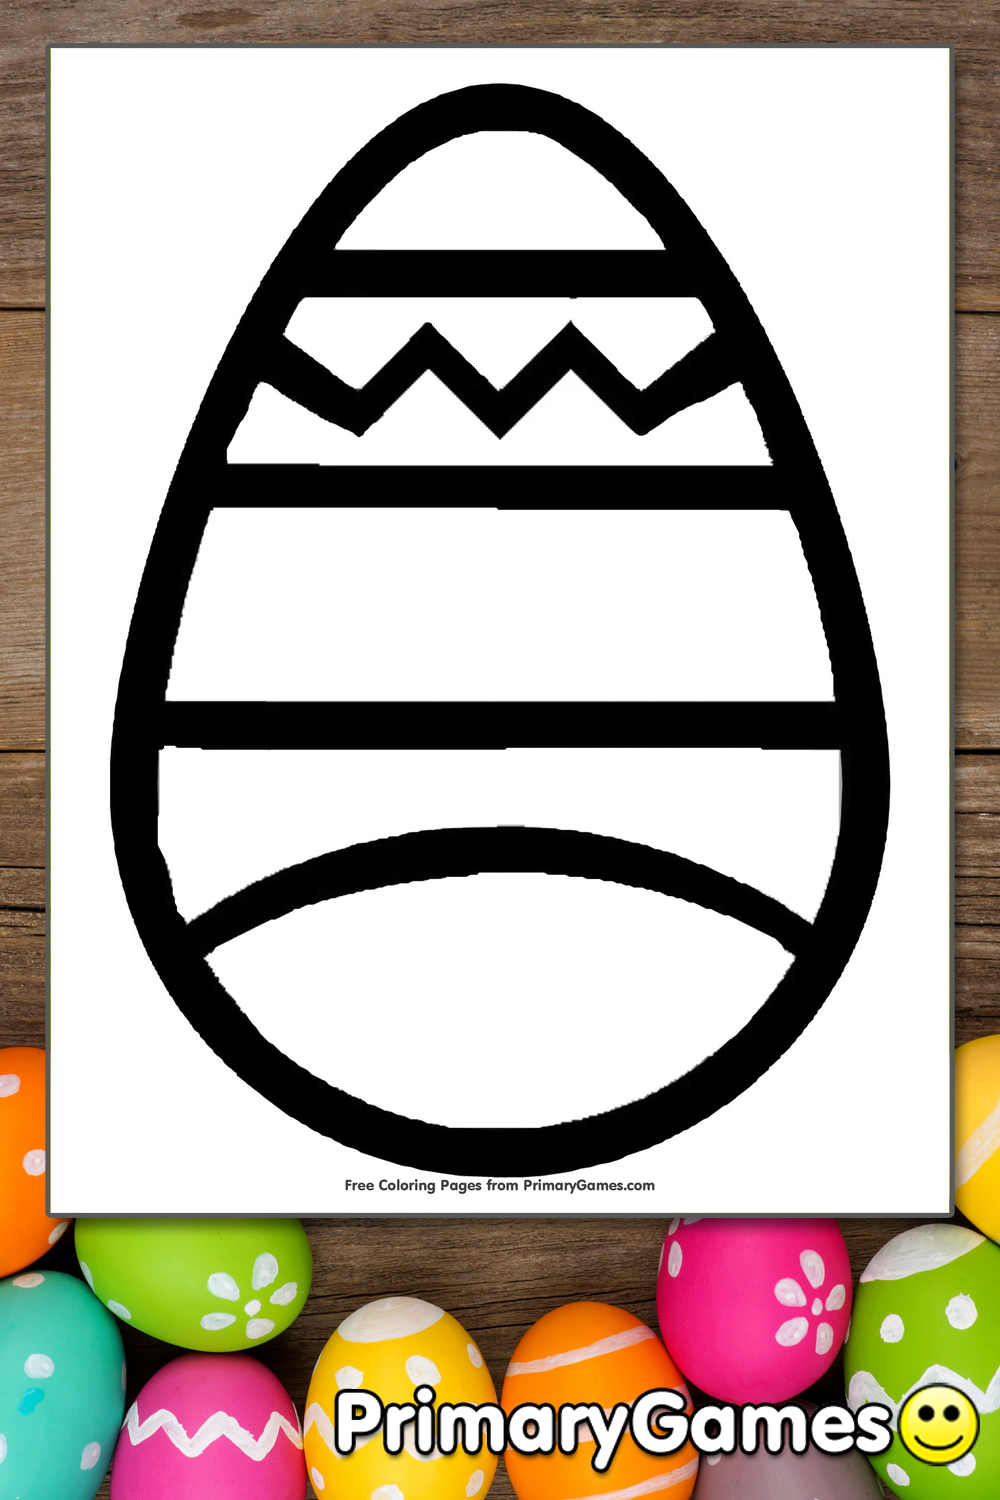 Easter Egg Coloring Page Printable Easter Coloring eBook